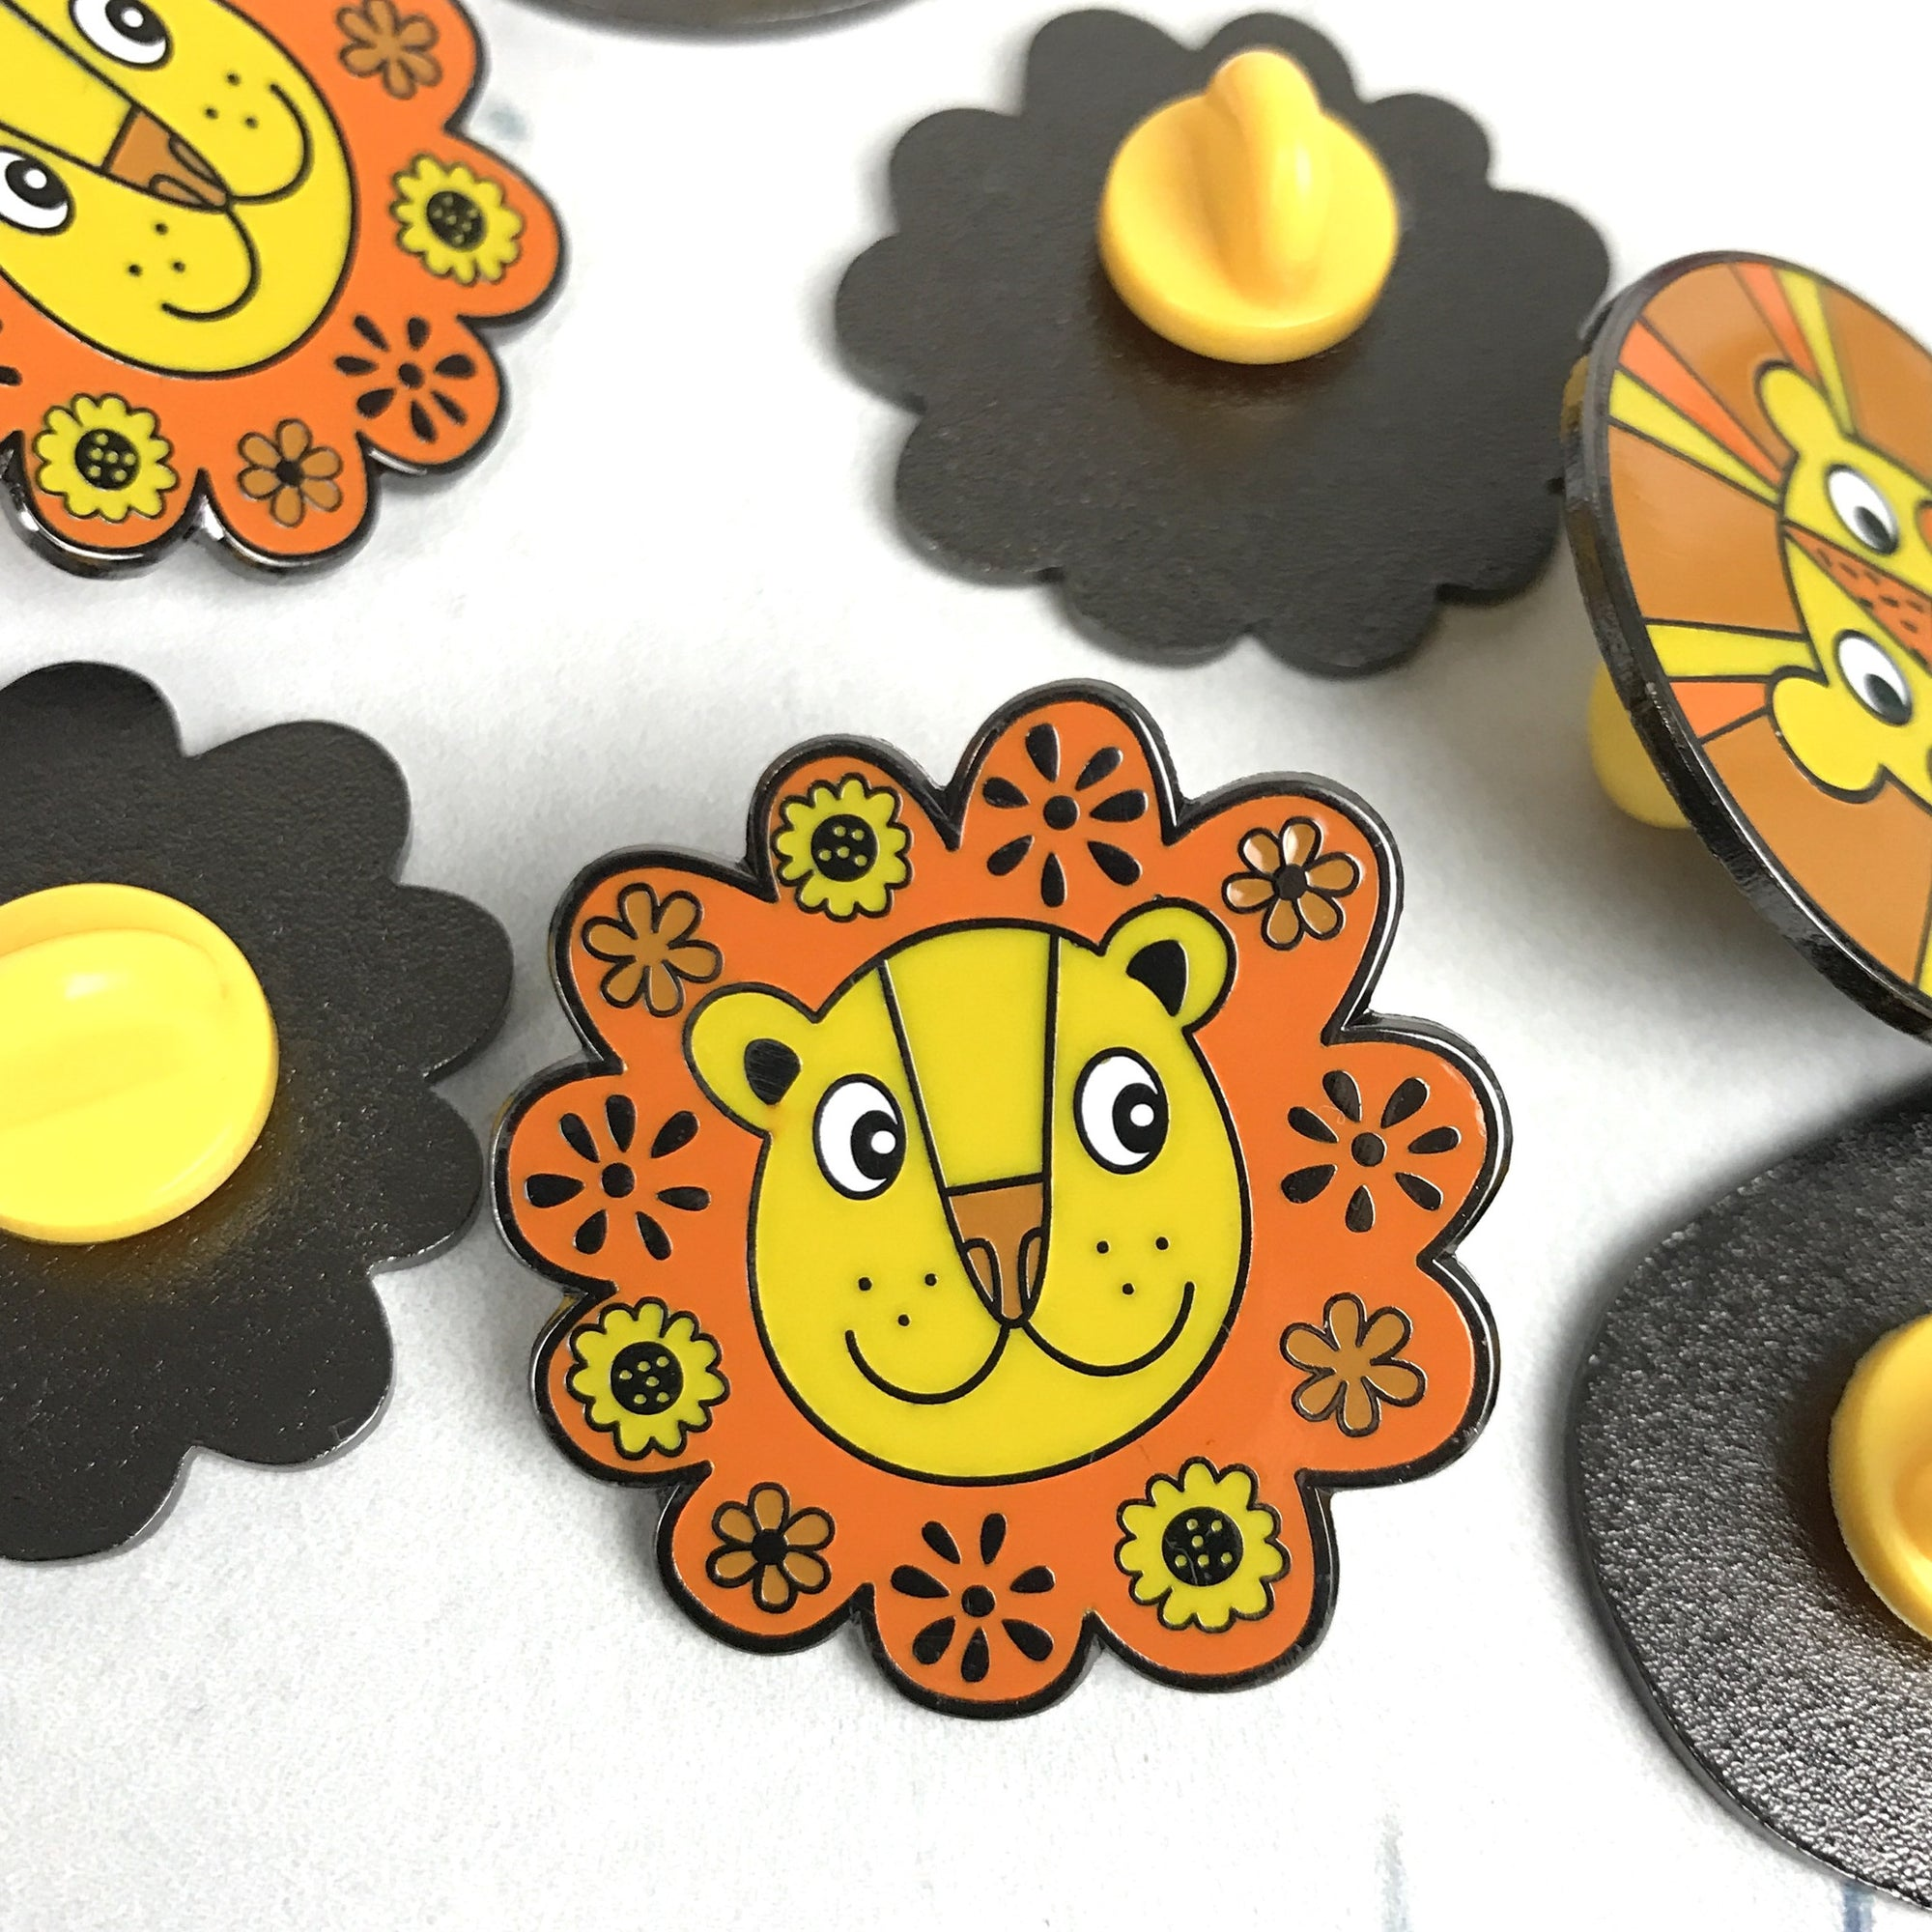 Flower Power Lion Enamel Pin - Auntie Mims